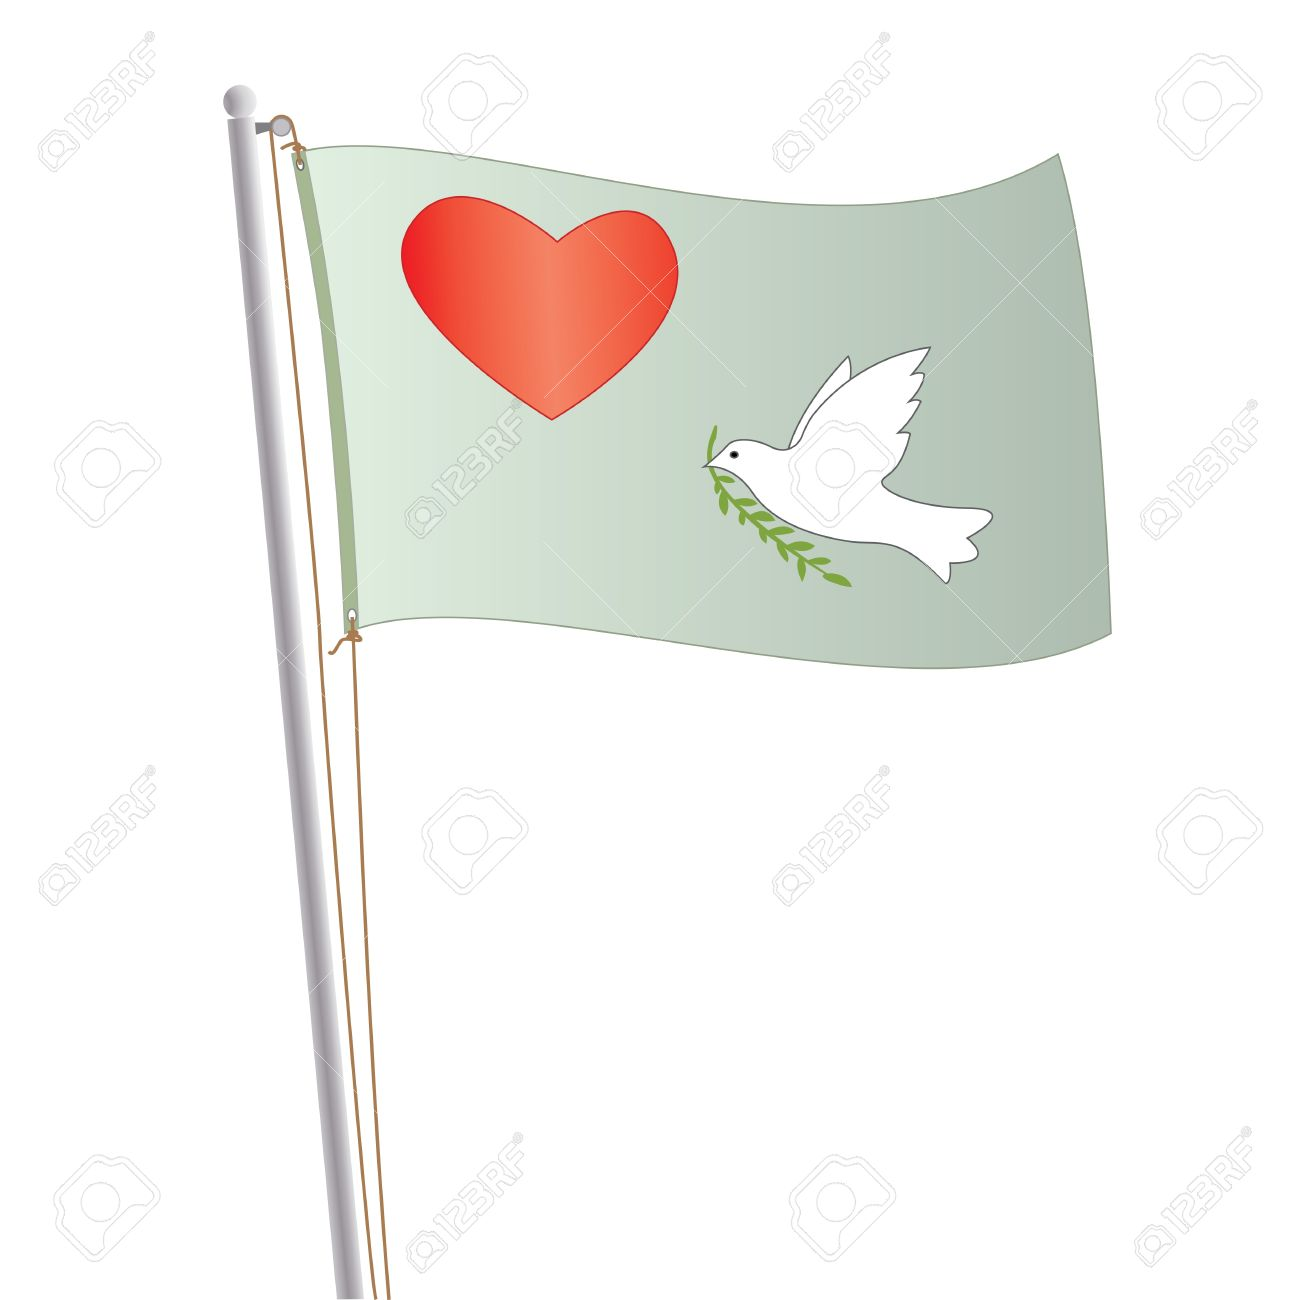 Graphic illustration of love and peace flag with heart and dove in it. Stock Vector - 12136815